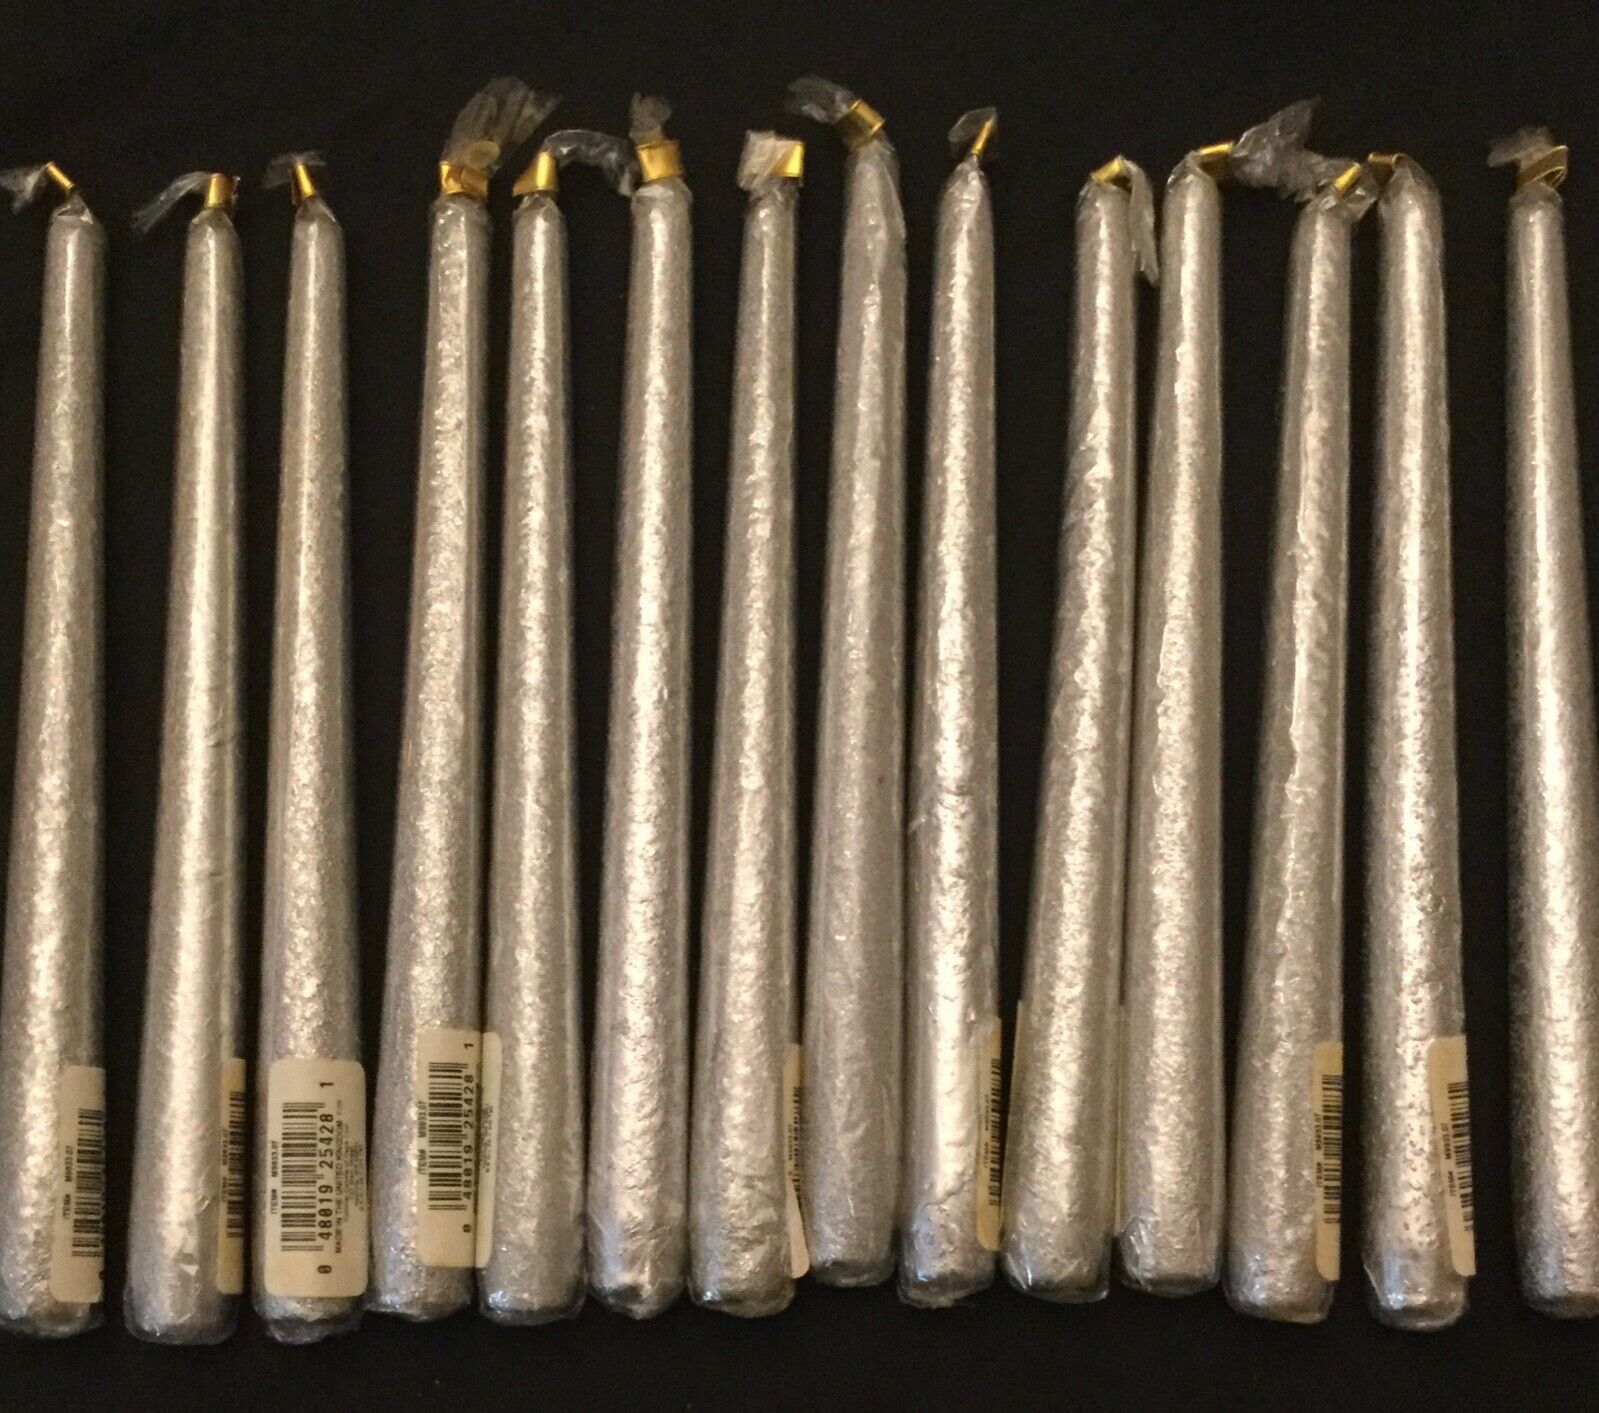 14 Taper Candles Colonial Candle Of Cape Cod 10 Silver Metallic NEW  - $22.00